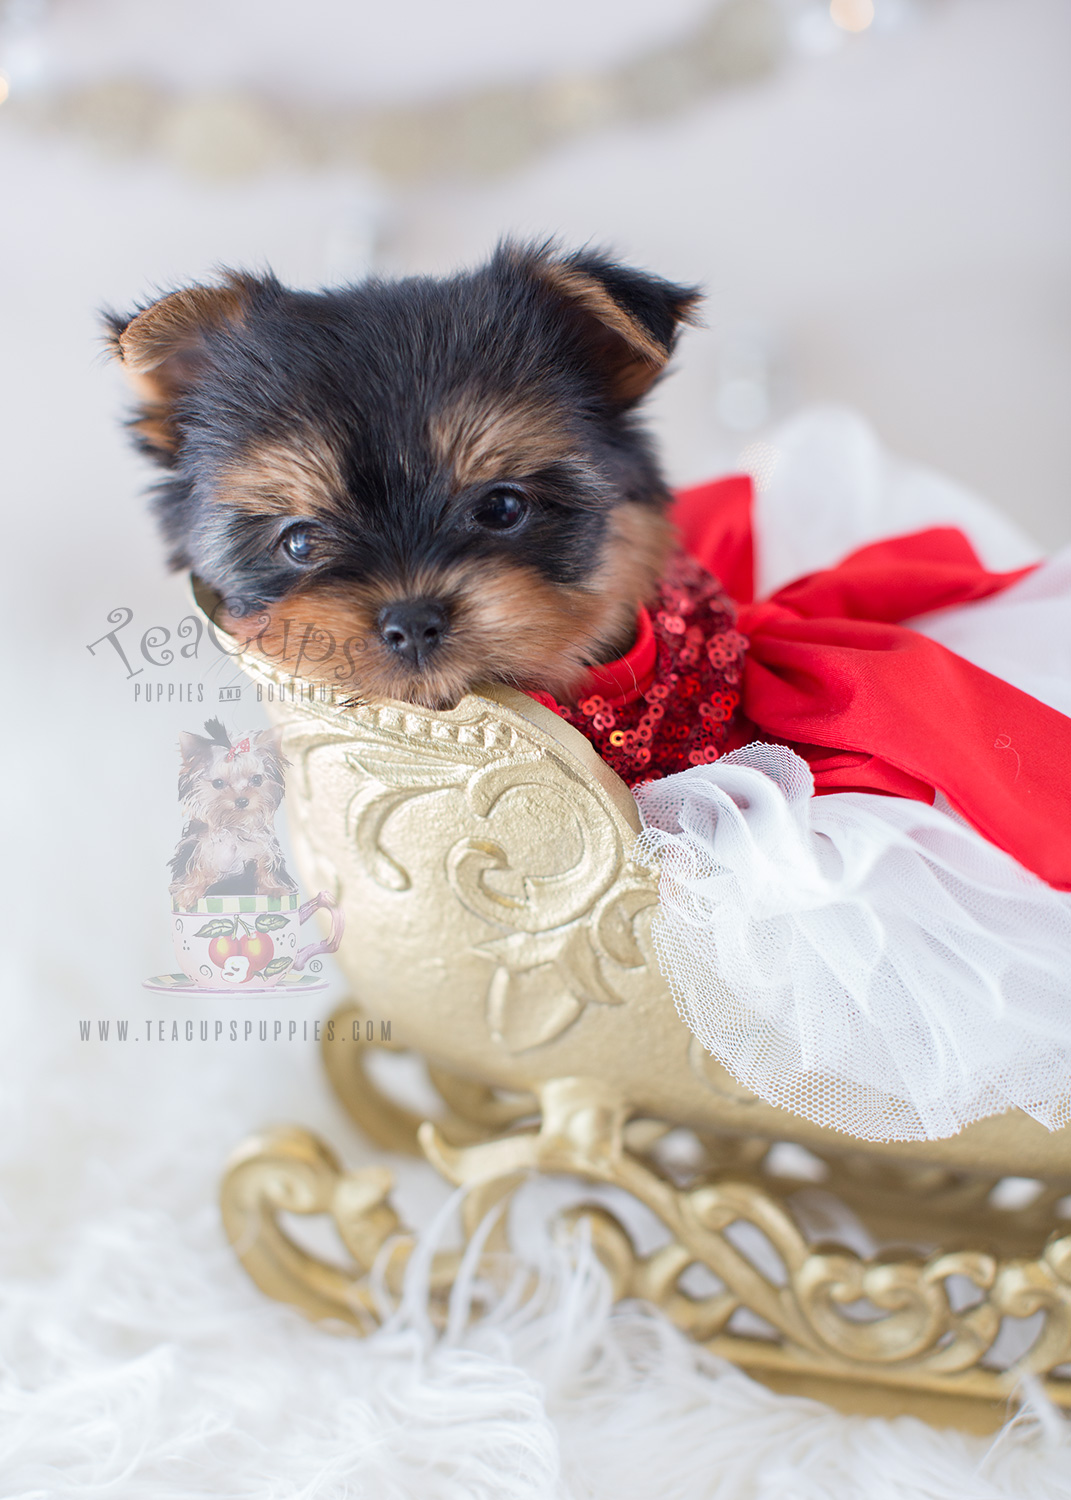 For Sale Teacup Puppies #319 Beautful Yorkie Puppy